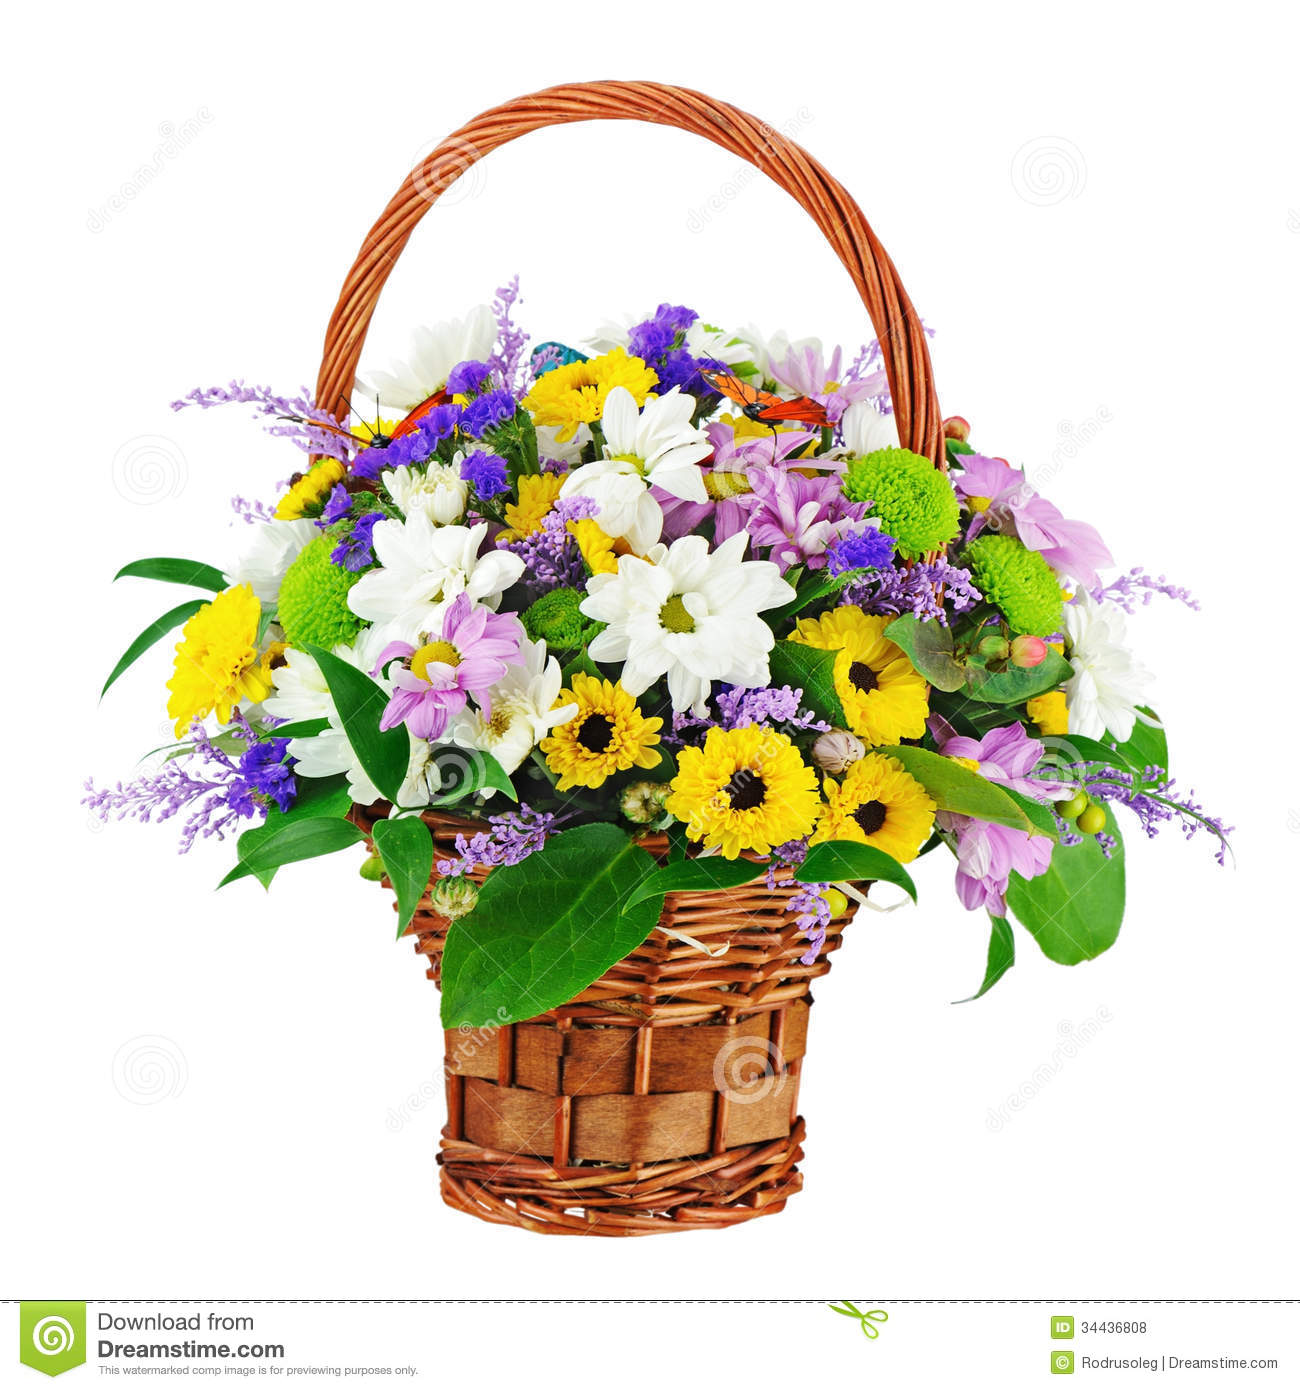 Flower Bouquet In Wicker Basket Isolated White Background Royalty Free Sto